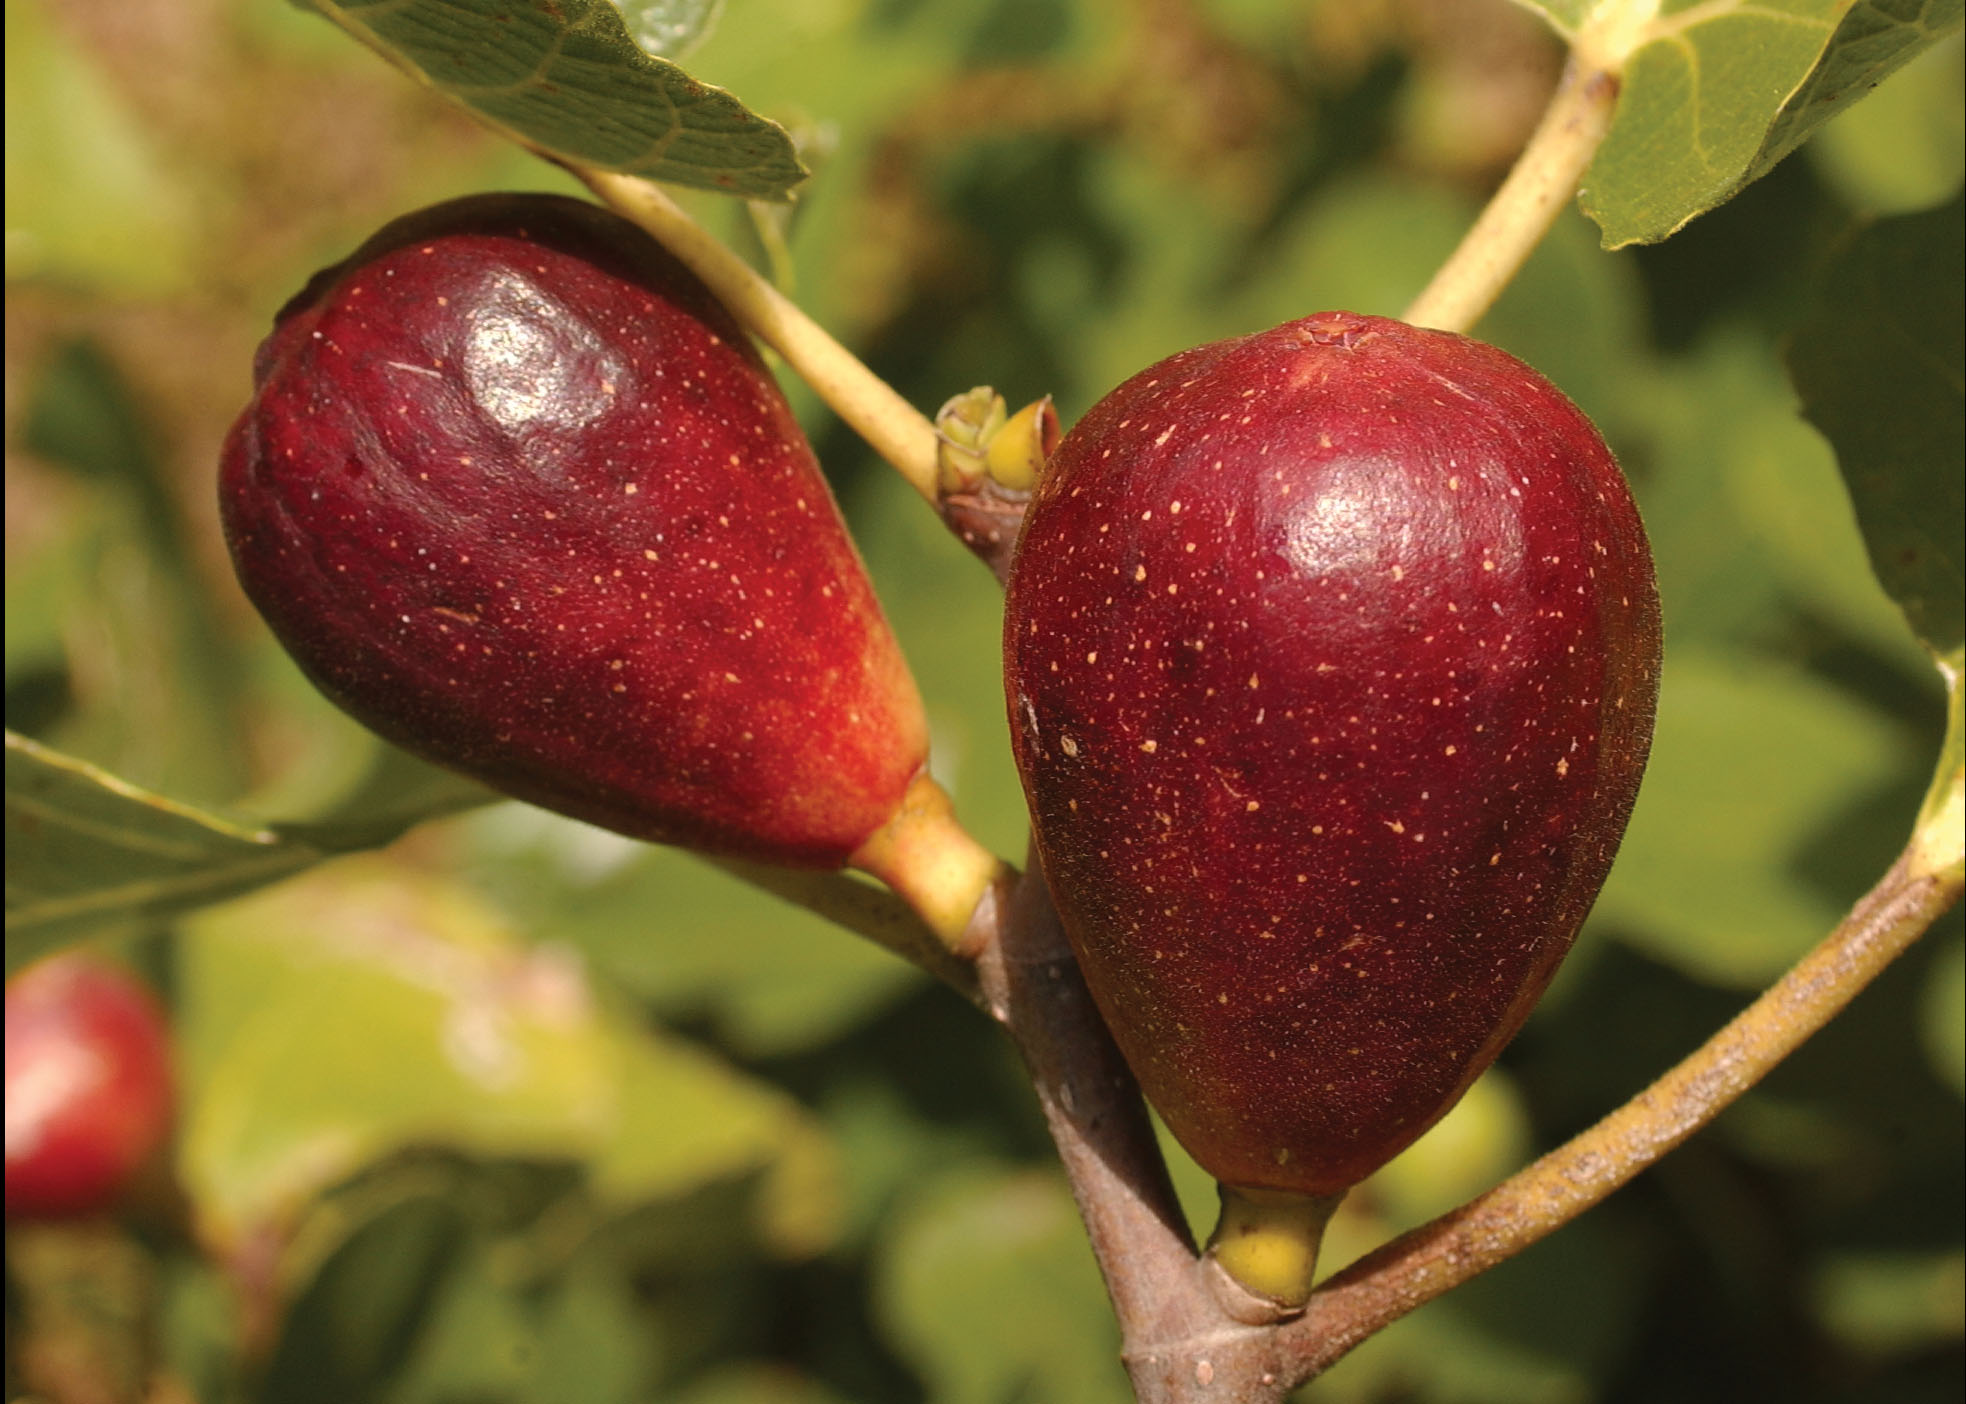 Figs are one of the most interesting fruits you can grow